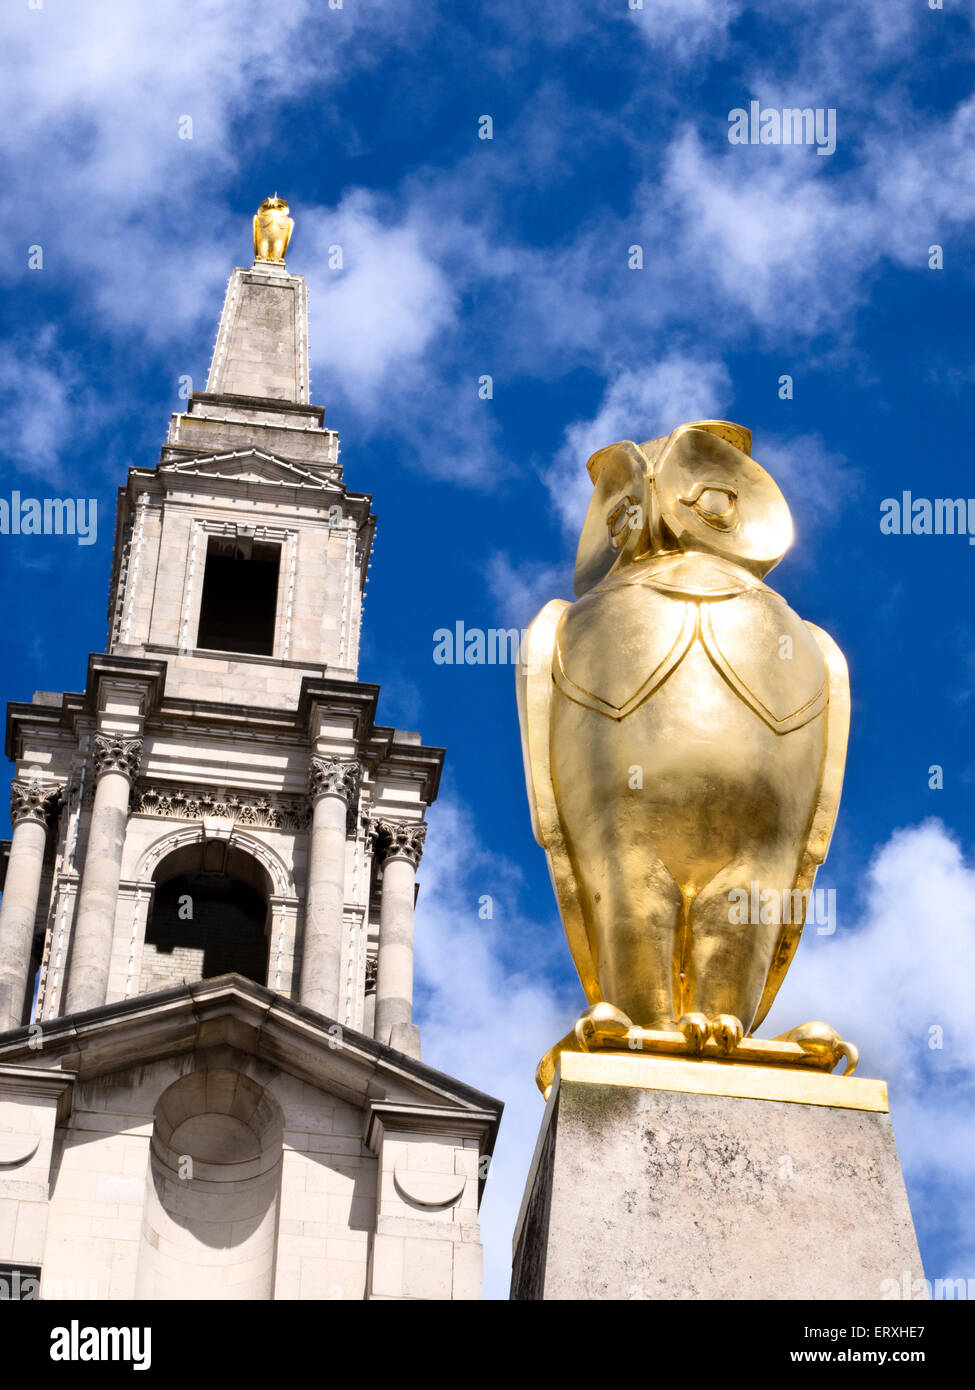 Golden Leeds Owl Statue at The Civic Hall in Millennium Square Leeds West Yorkshire England - Stock Image